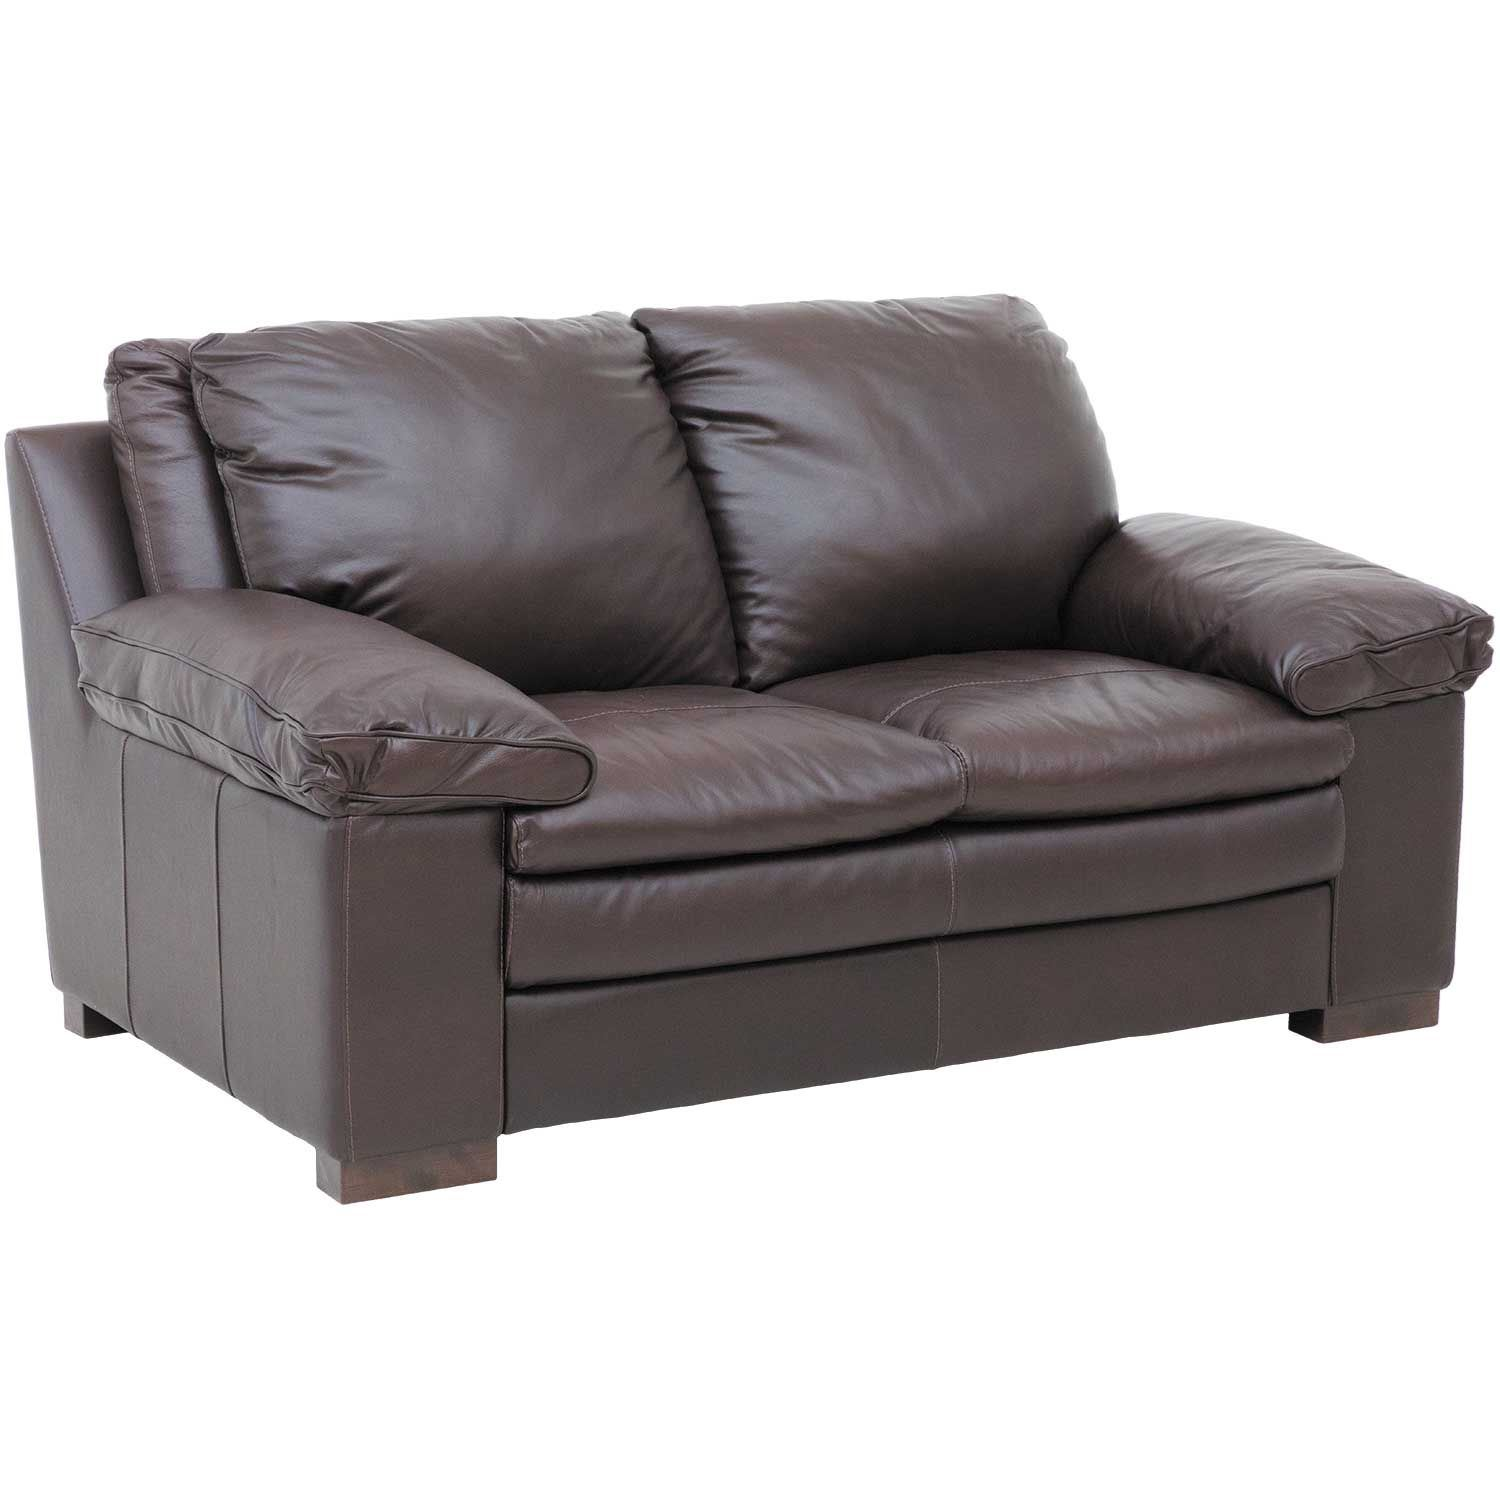 Leon Italian All Leather Loveseat 4553 Love Soft Russet Soft Line Afw